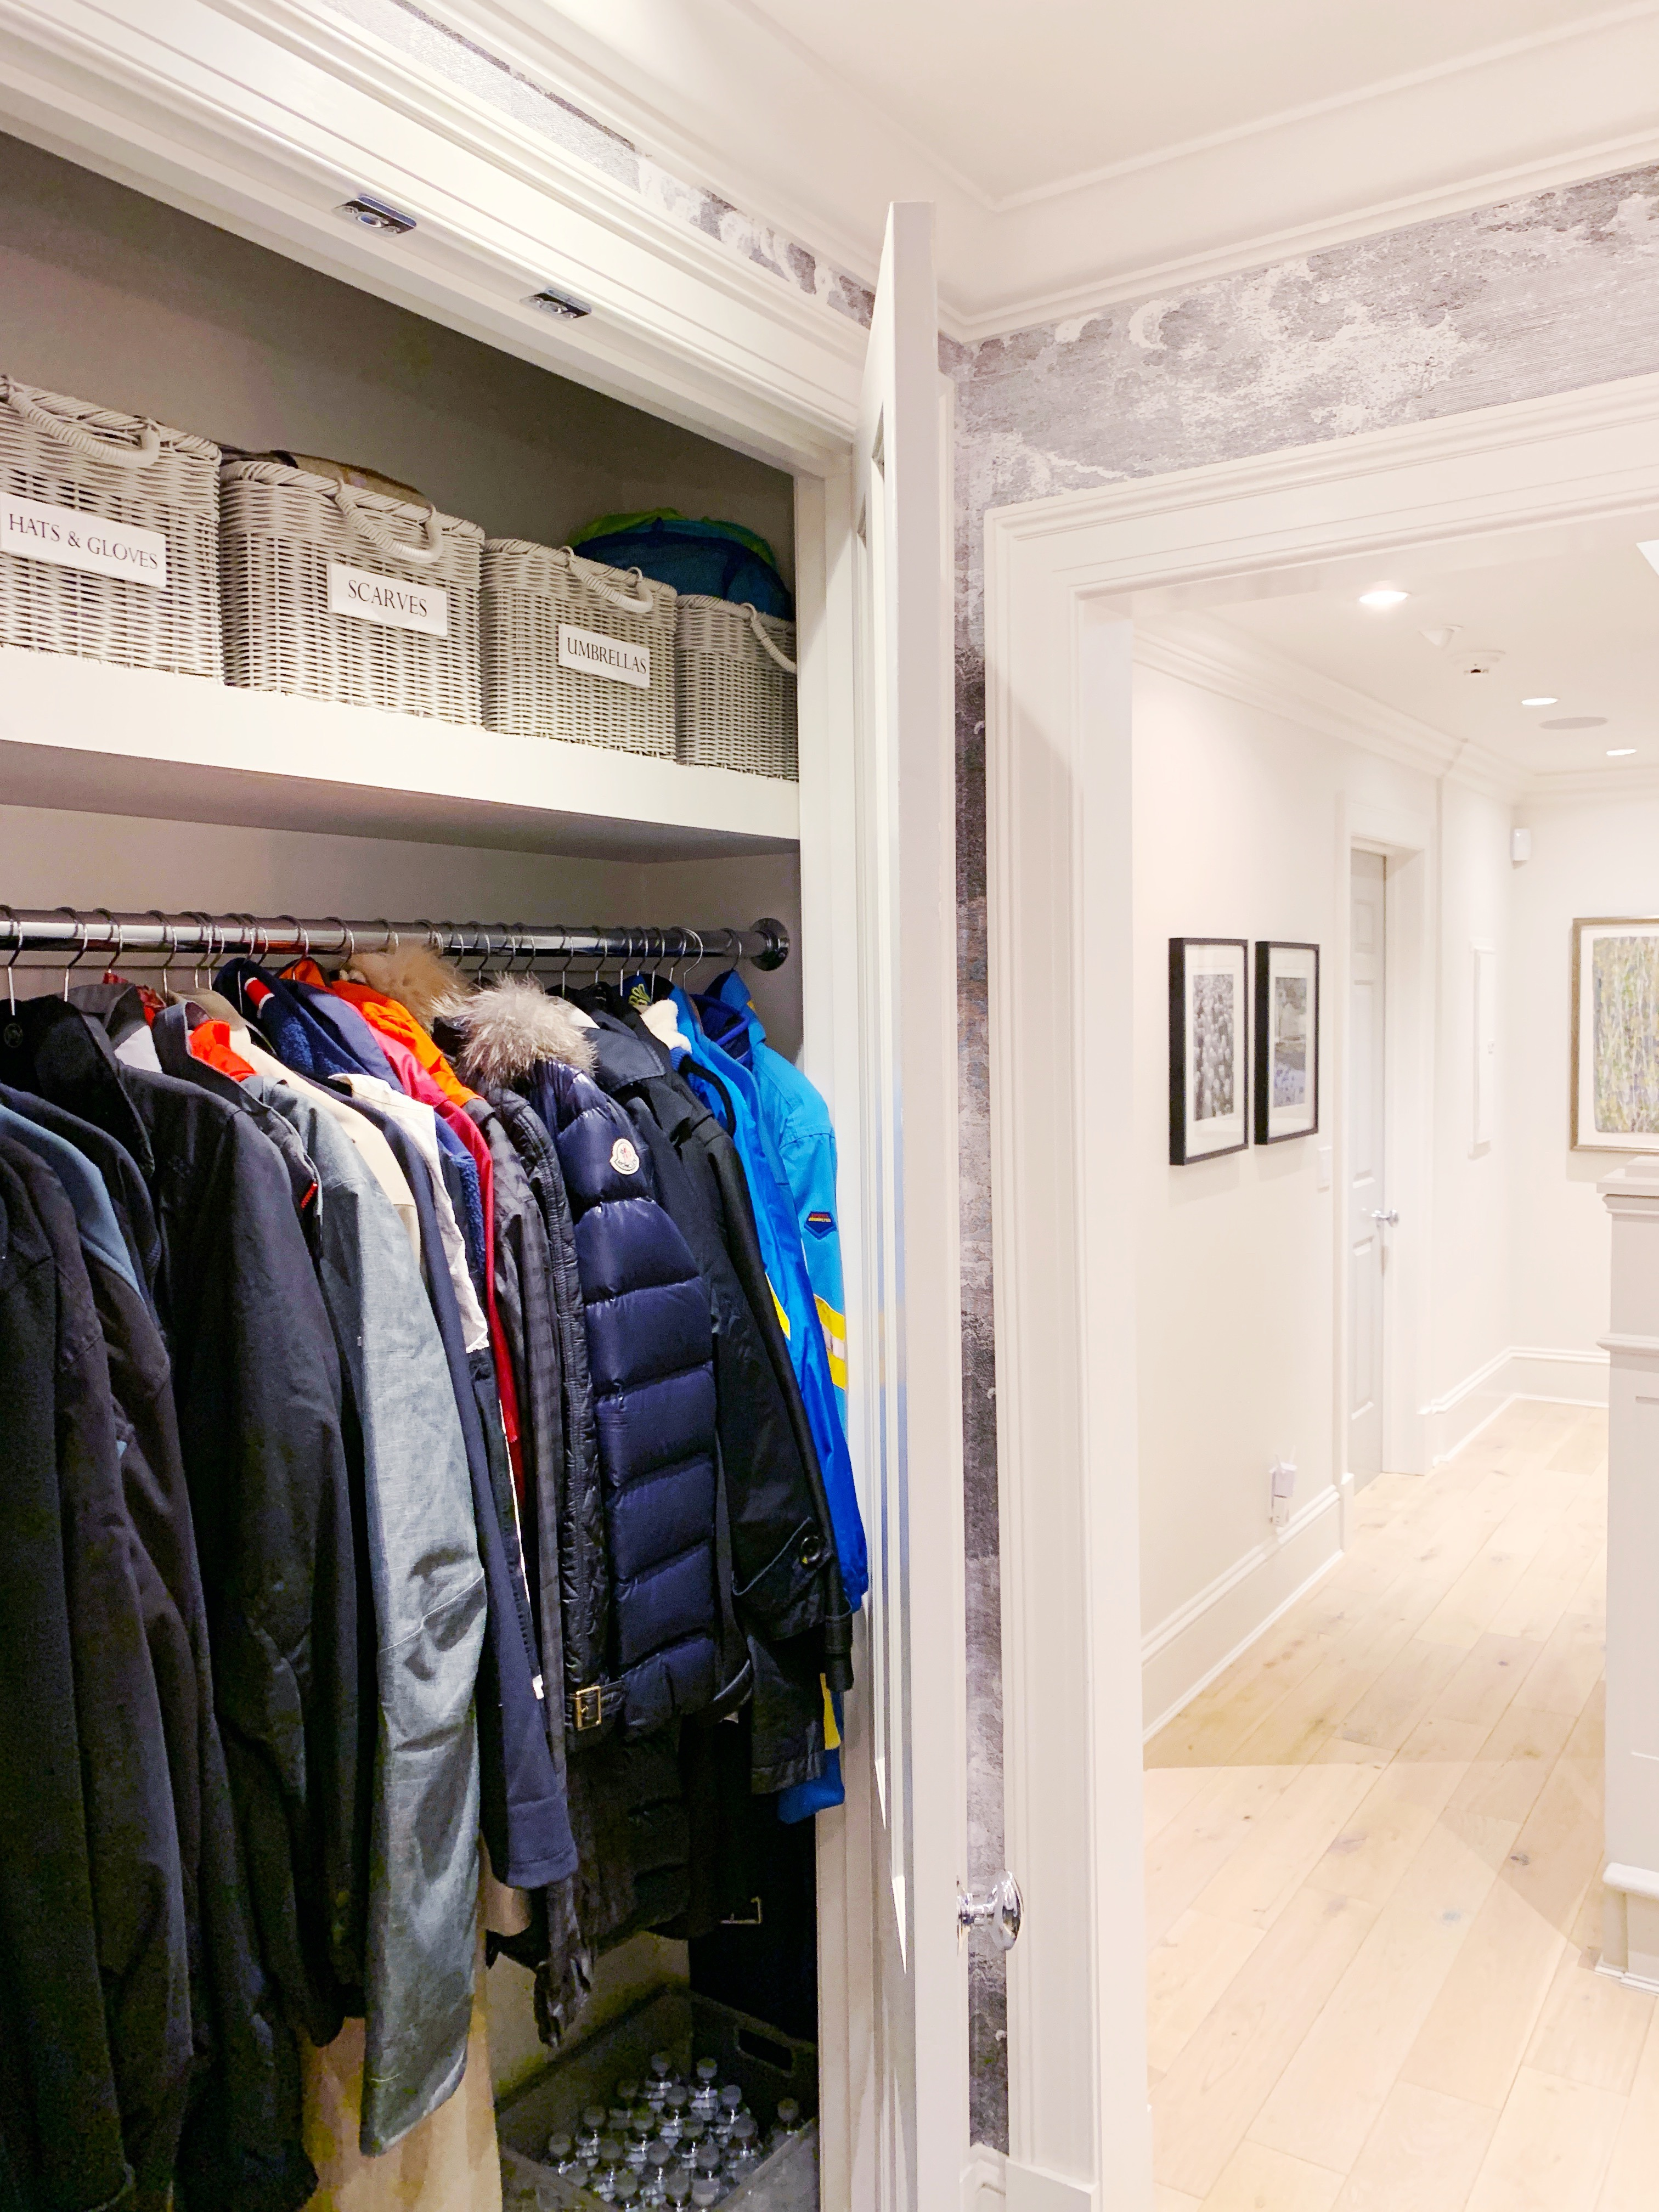 Closet organization system with matching grey baskets on the top shelf.